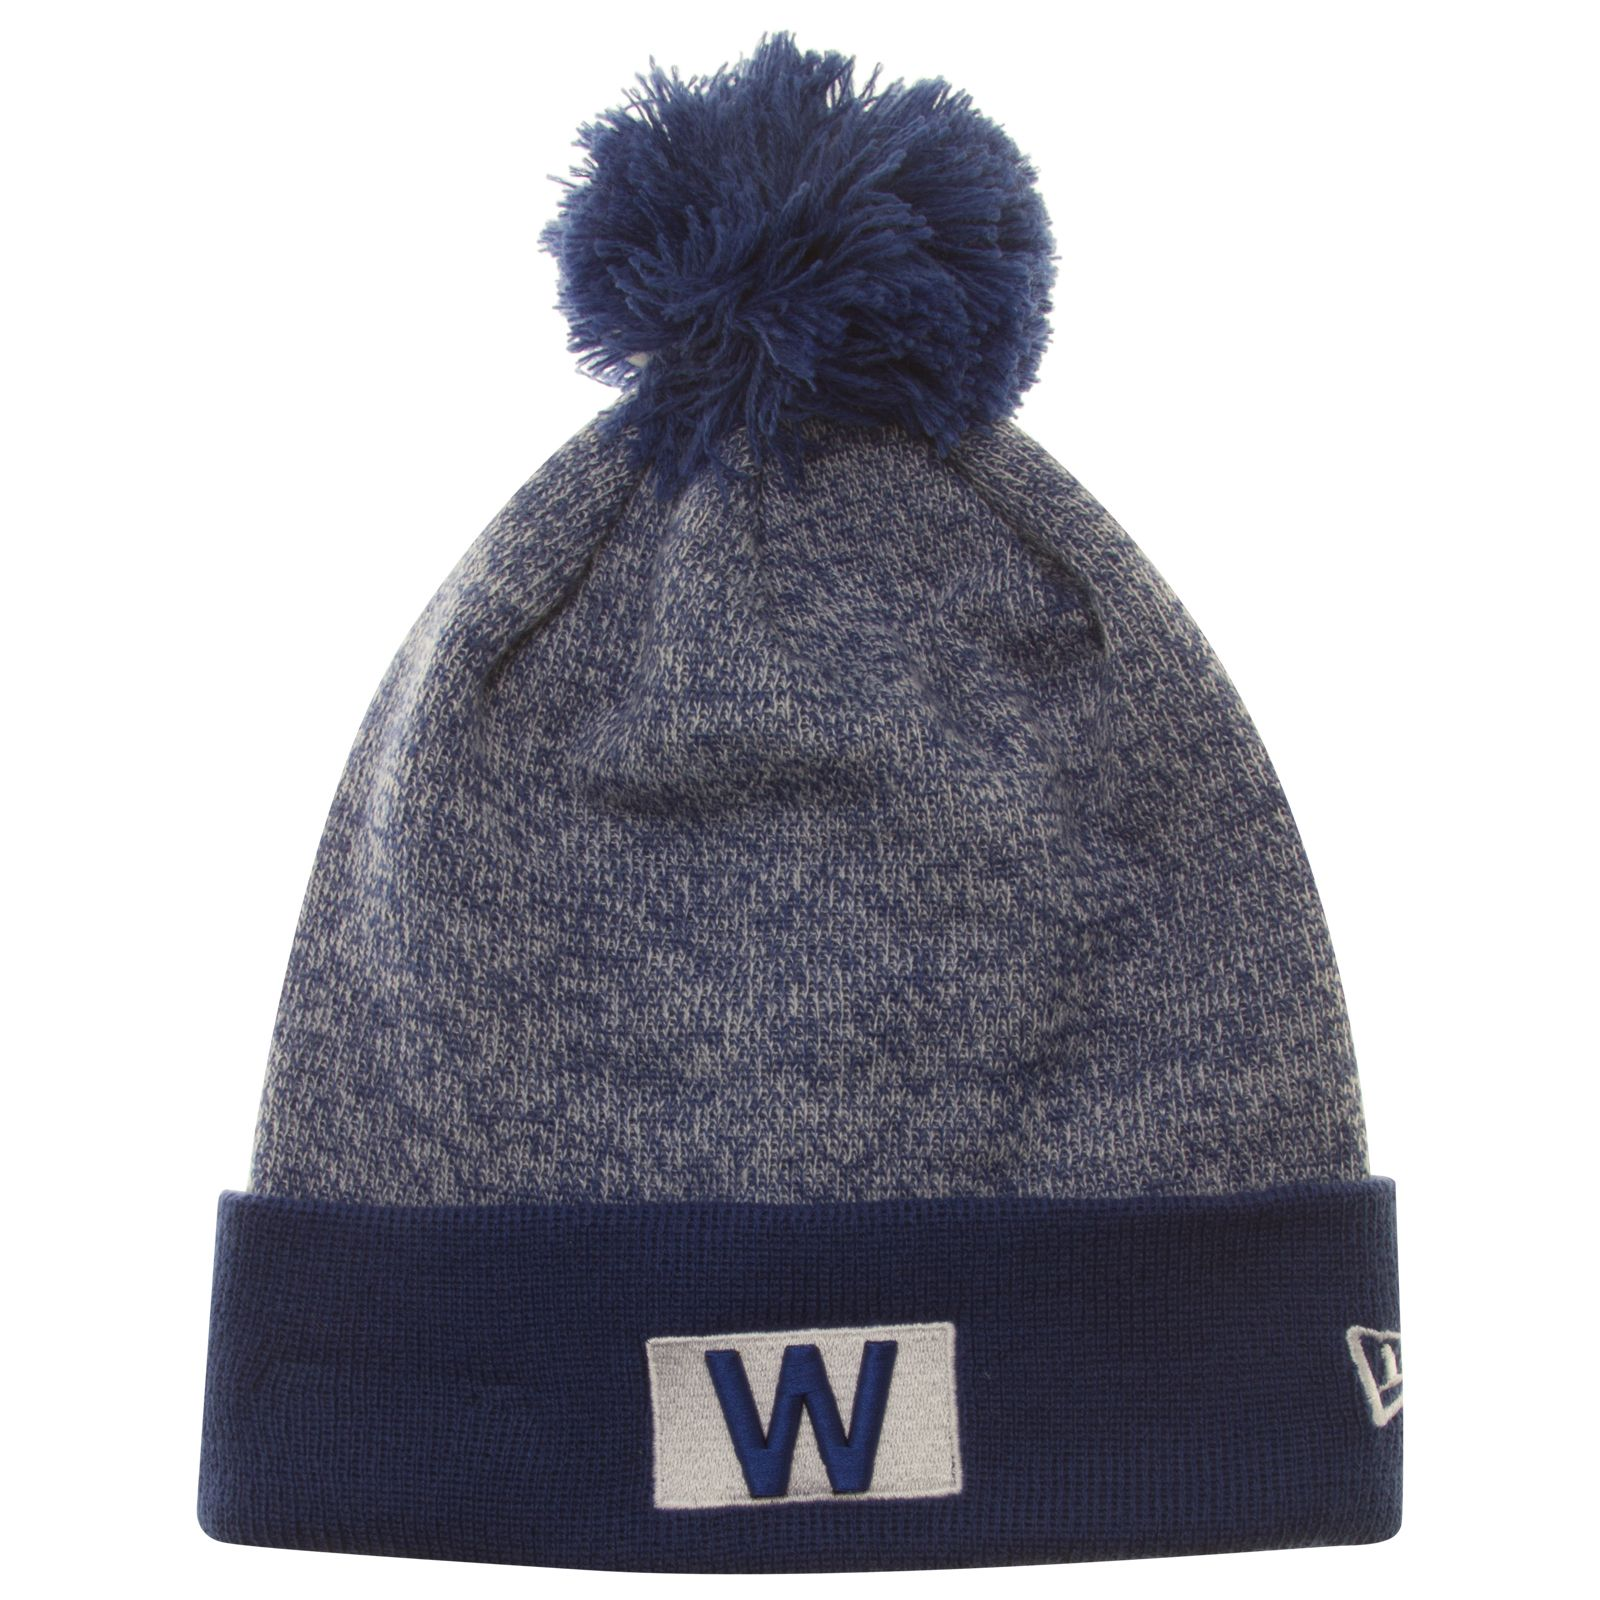 Chicago Cubs Heather Blue W Flag Knit Pom Hat by New Era  Chicago  Cubs   ChicagoCubs abcc4a206ef